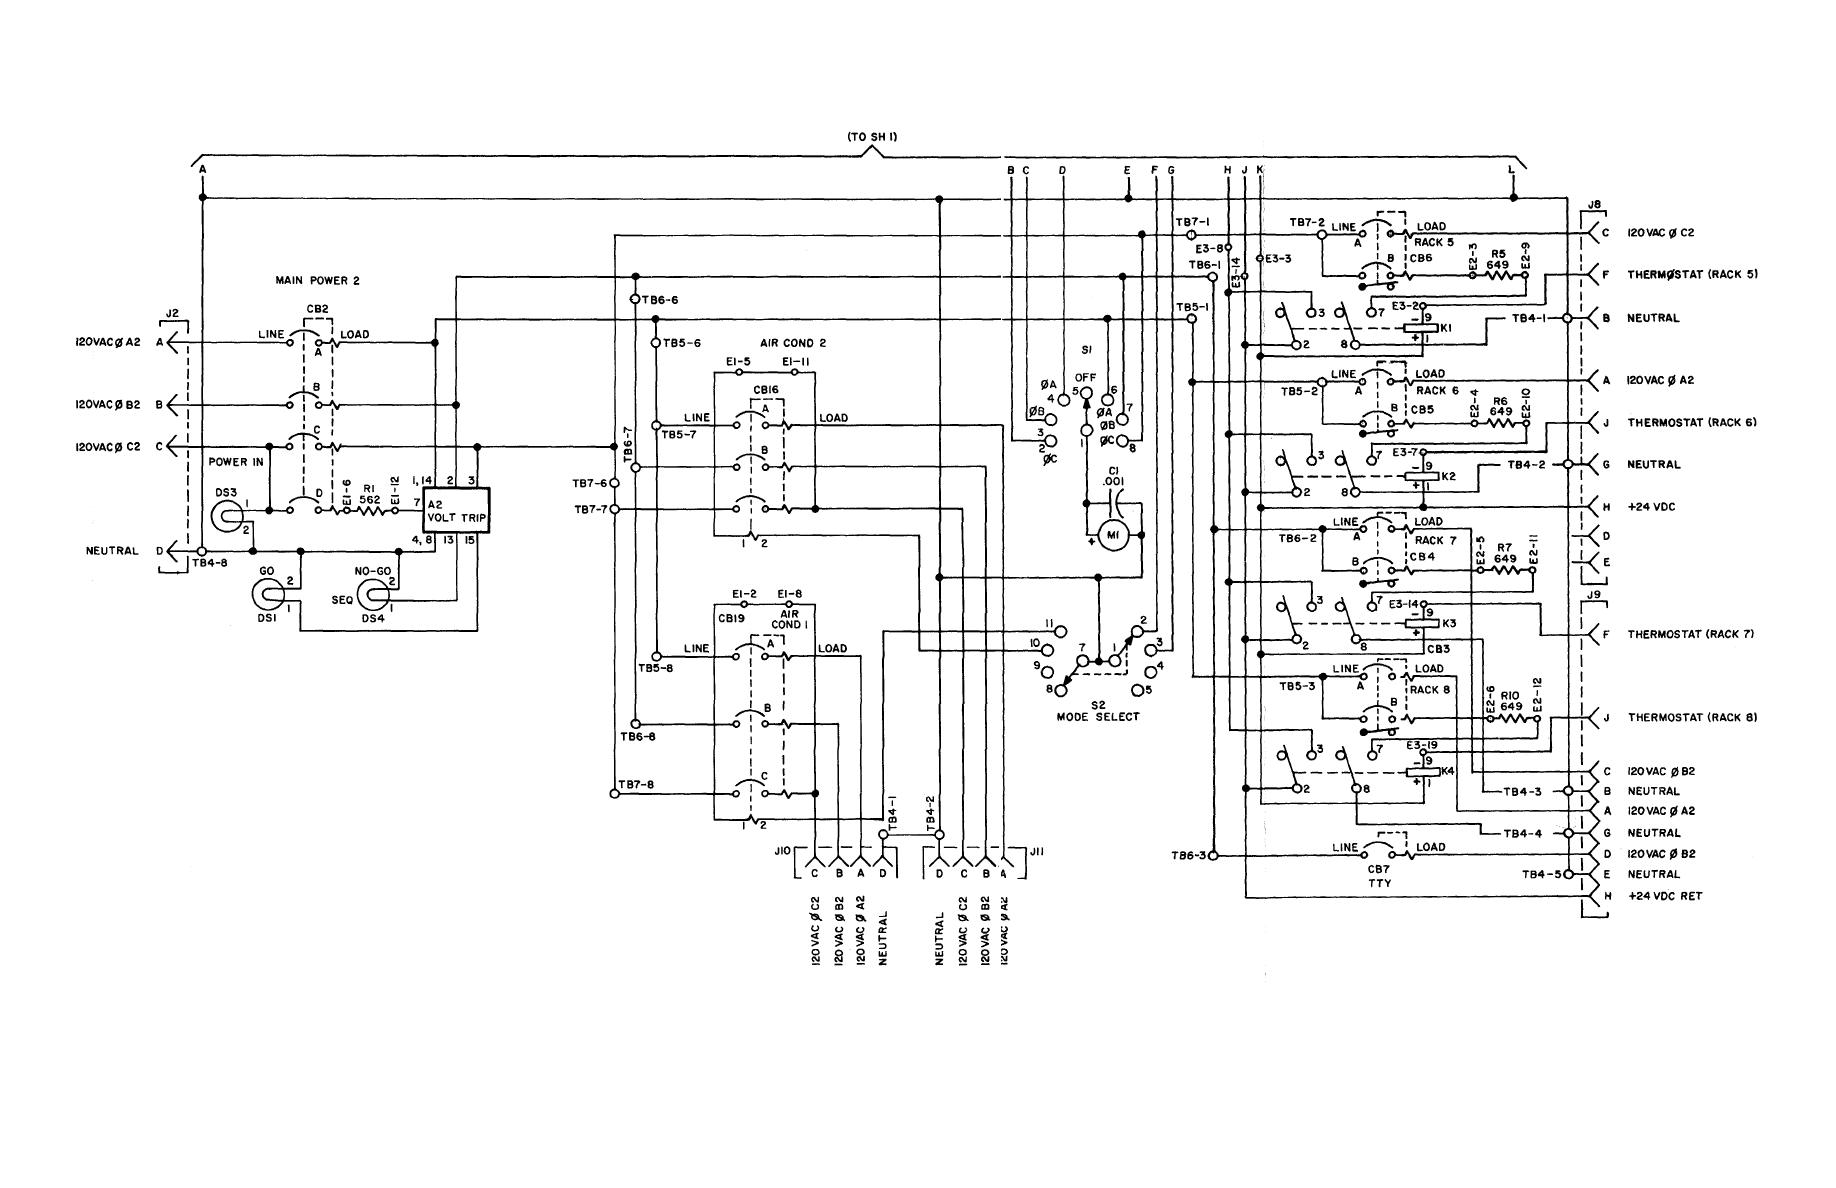 electrical sub panel wiring diagram with Tm 11 5895 846 140385 on Siemens Wiring Diagrams besides Kak Podkluchit I Nastroit Sabvyfer likewise S1333302 moreover Pool Light Wiring Schematic together with 2014 Ford F250 Trailer Fuse.